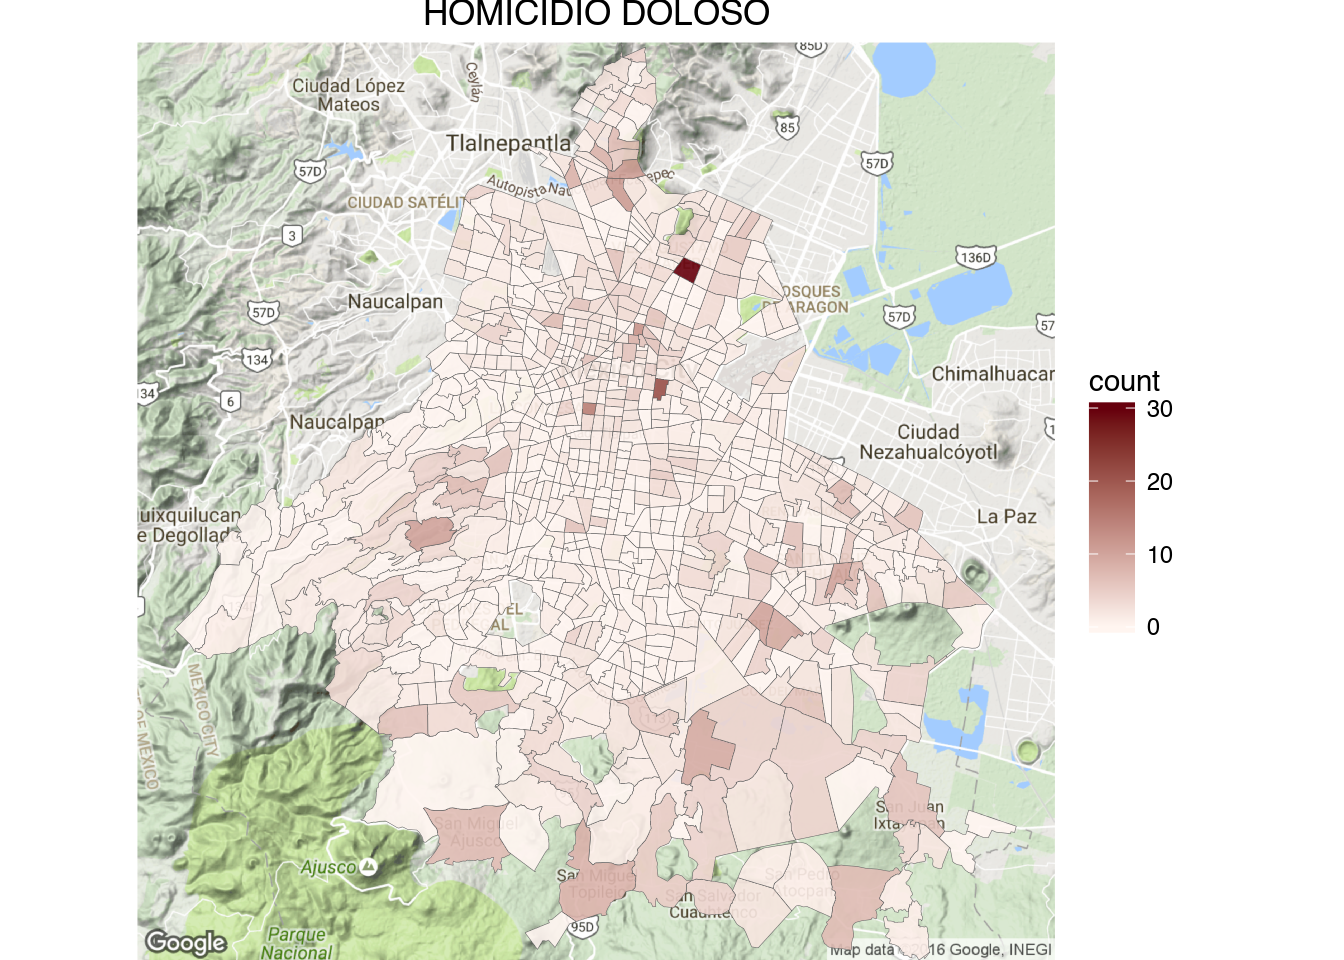 How to create crime maps of Mexico City Mexico City Google Maps on